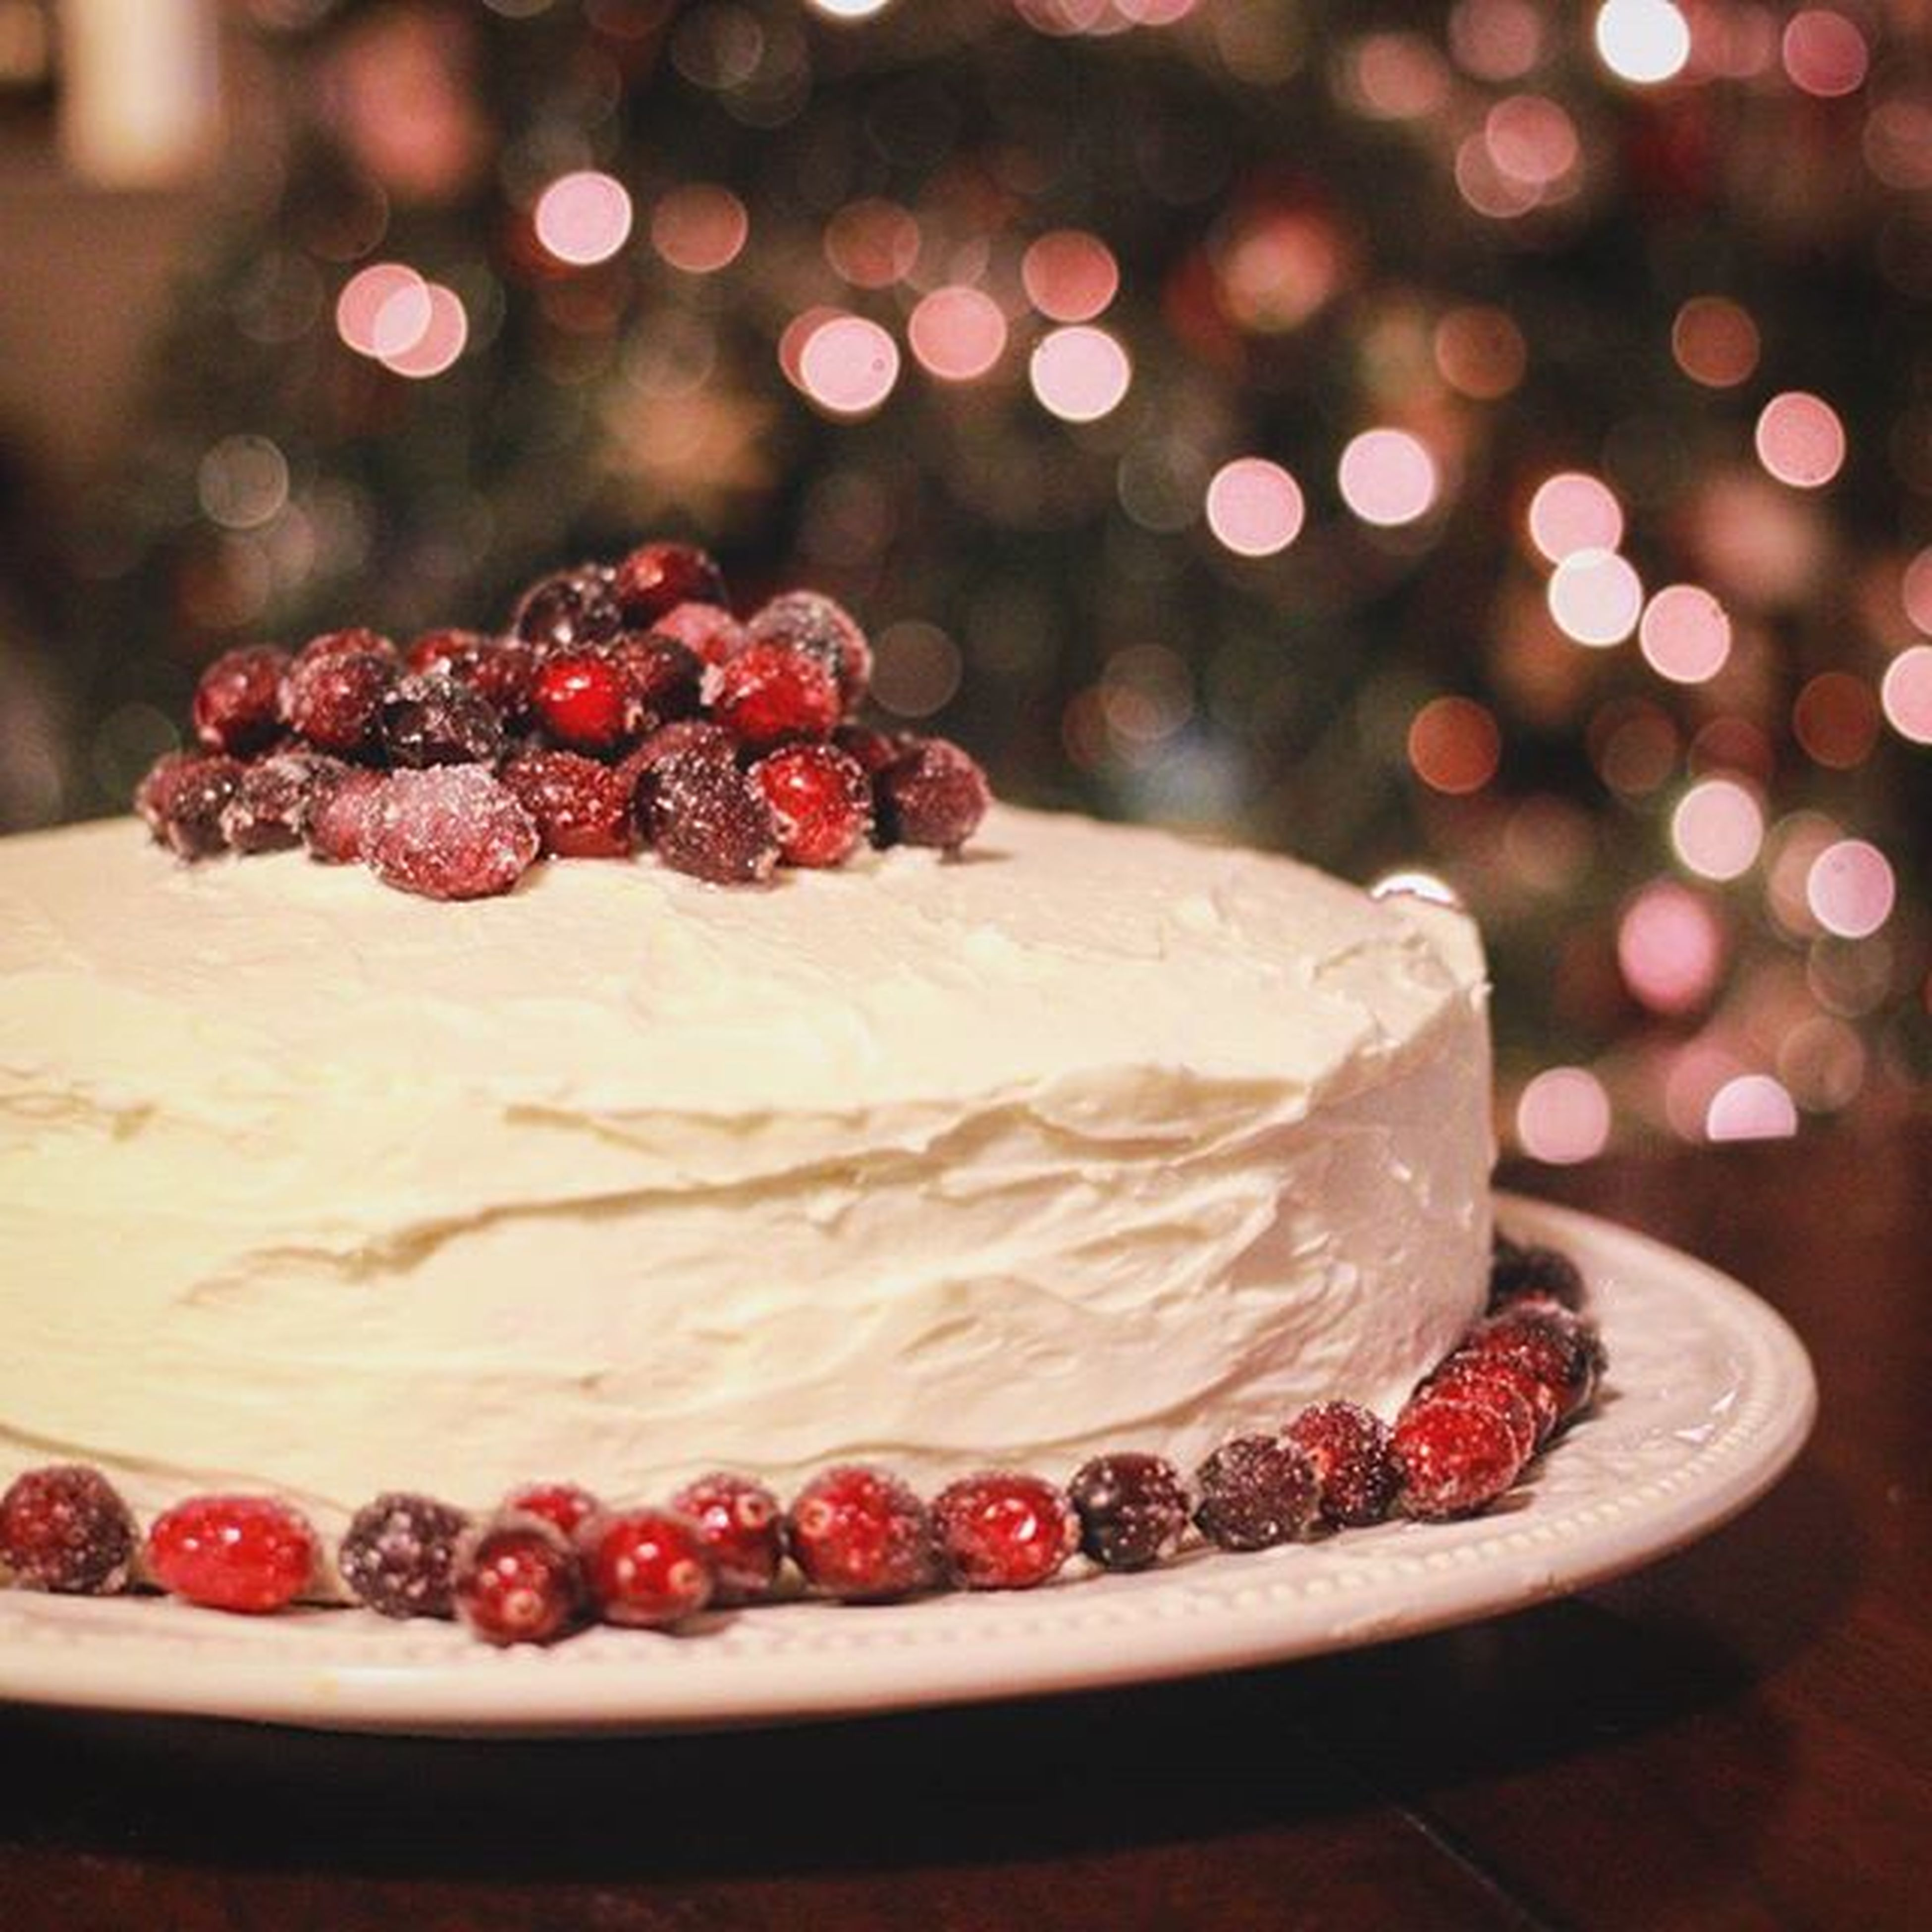 food and drink, food, freshness, fruit, sweet food, indoors, dessert, strawberry, raspberry, ready-to-eat, indulgence, healthy eating, berry fruit, still life, blueberry, temptation, cake, red, close-up